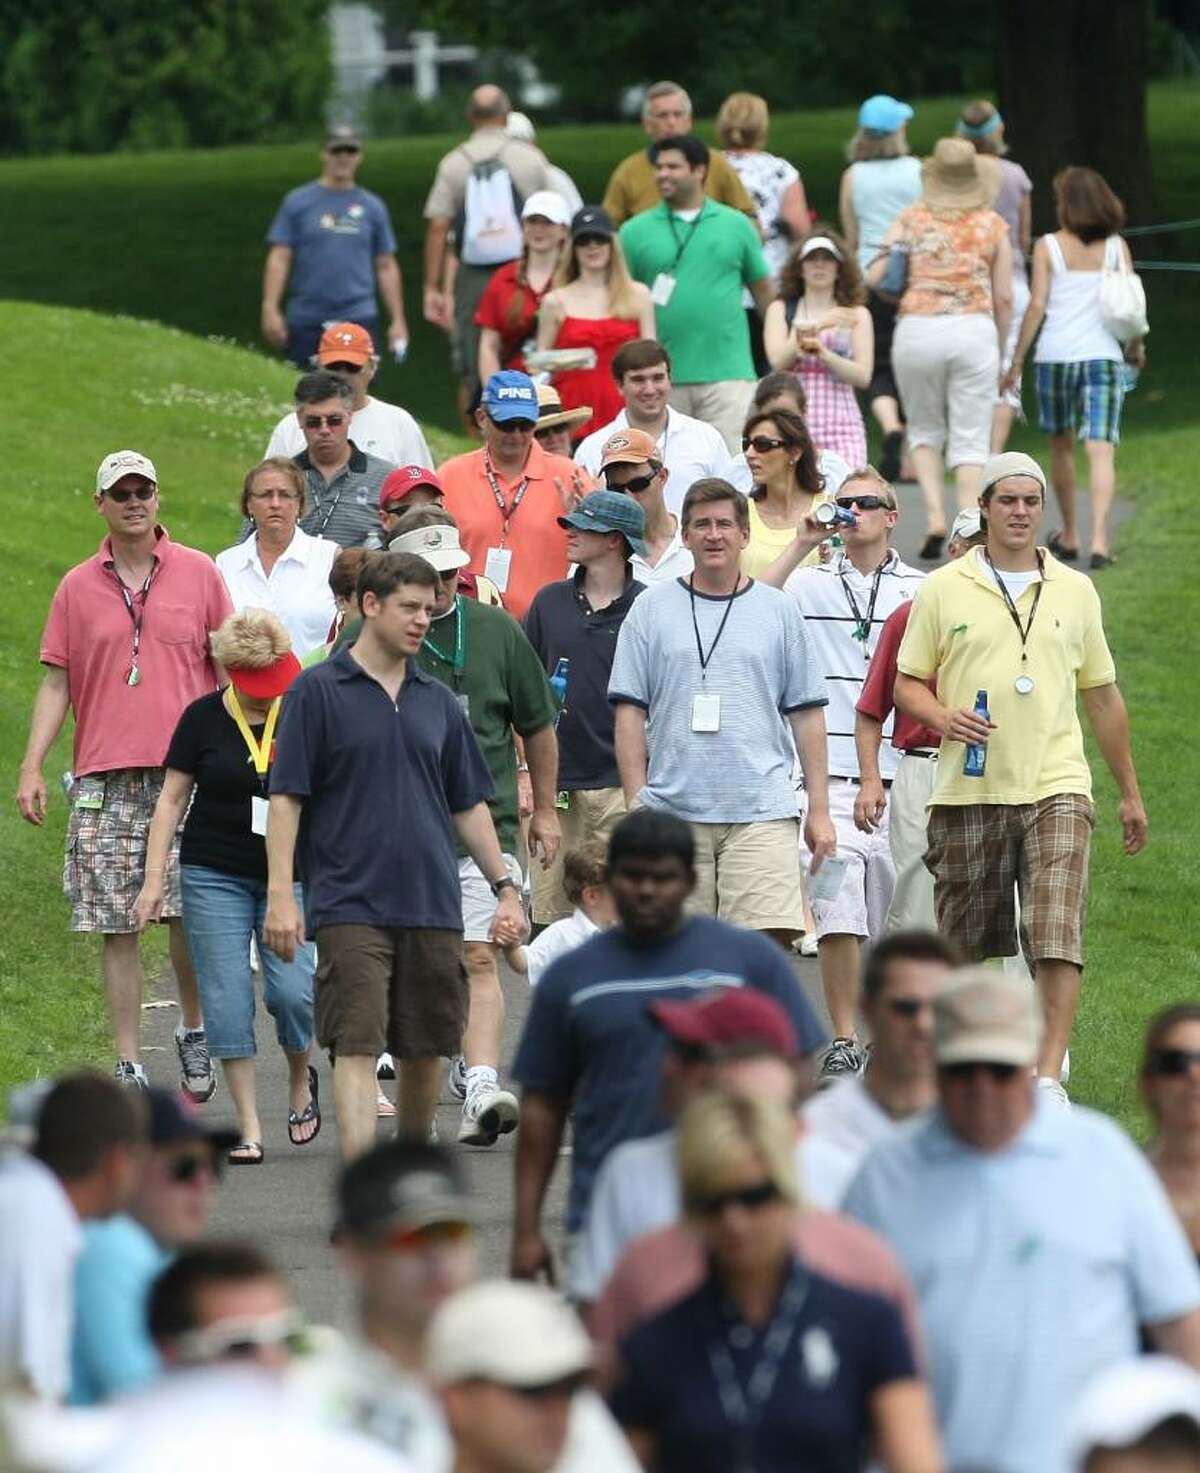 CROMWELL, CONNECTICUT - JUNE 27: Fans head to the first green during round three of the 2009 Travelers Championship at TPC River Highlands on June 27, 2009 in Cromwell, Connecticut. (Photo by Jim Rogash/Getty Images)